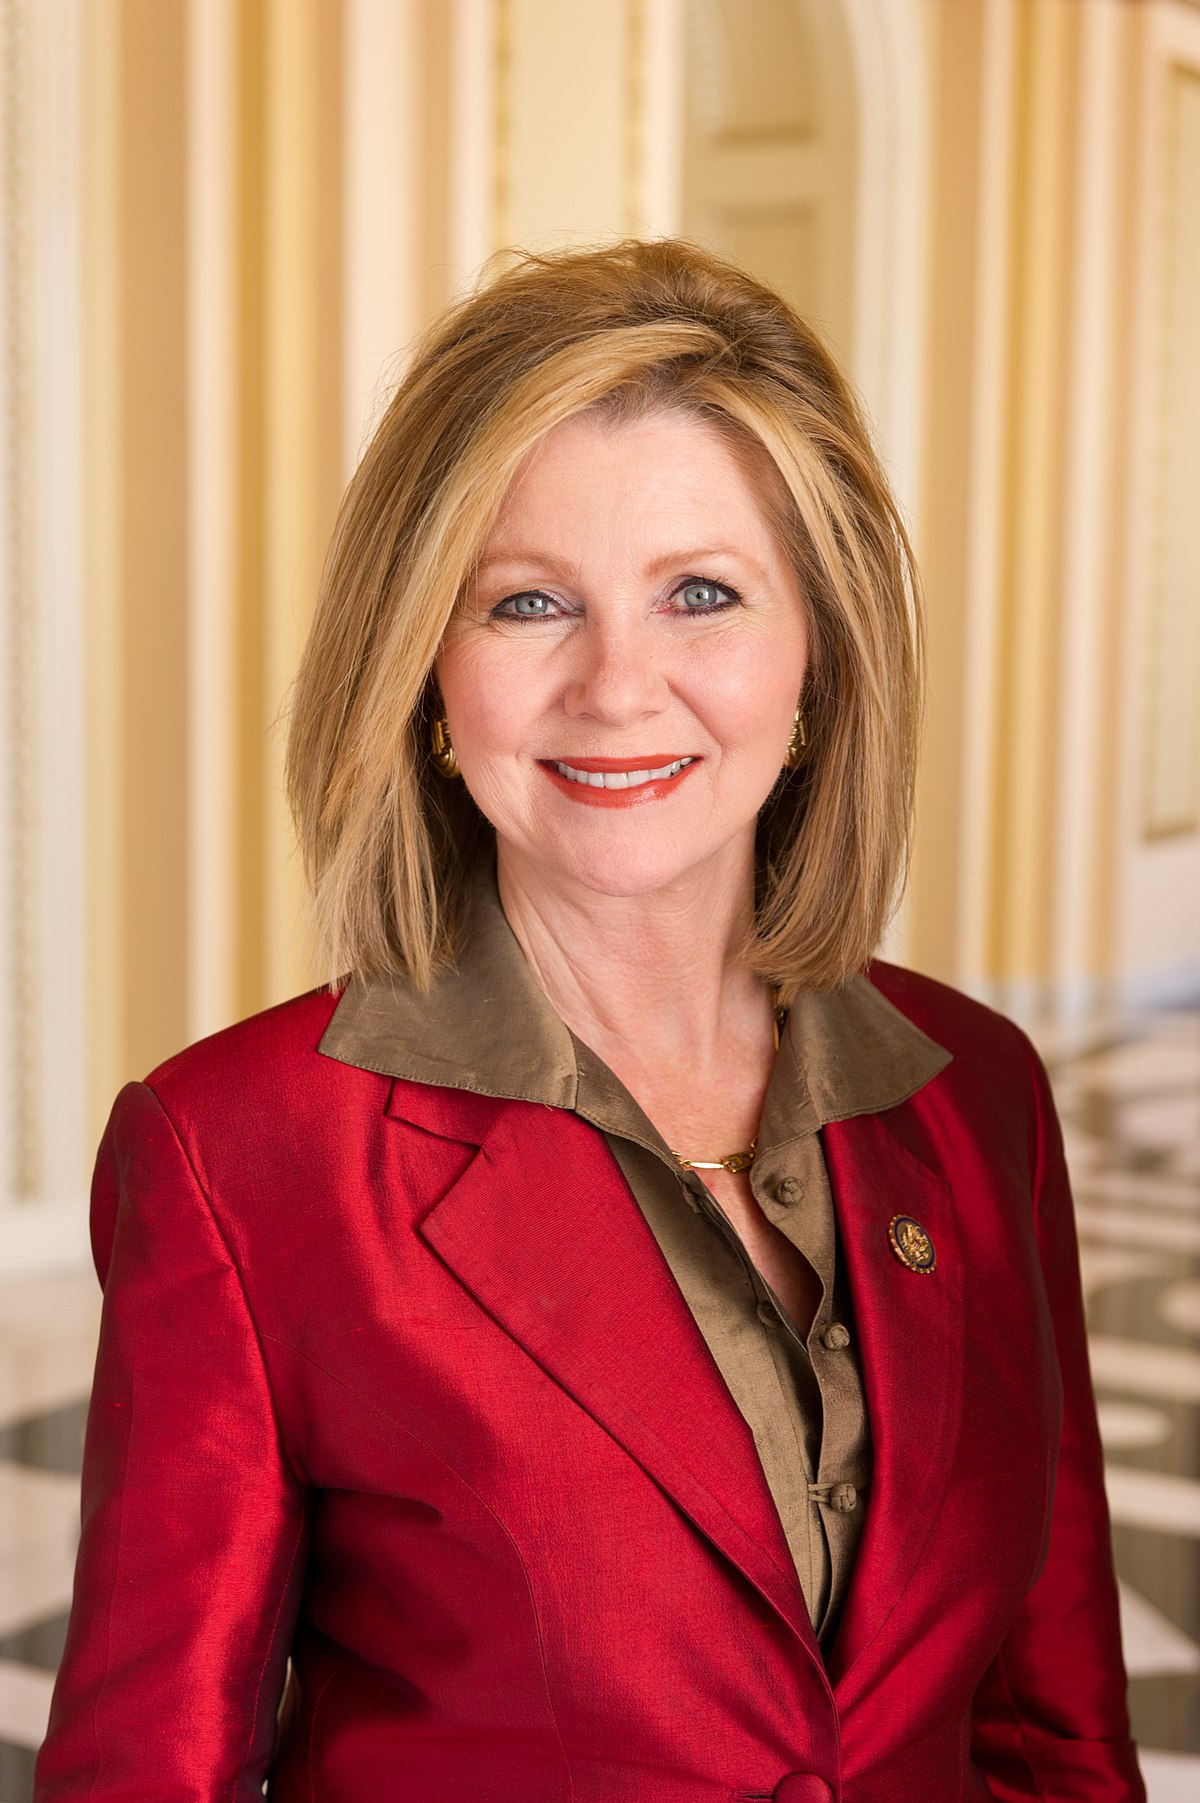 Marsha blackburn young